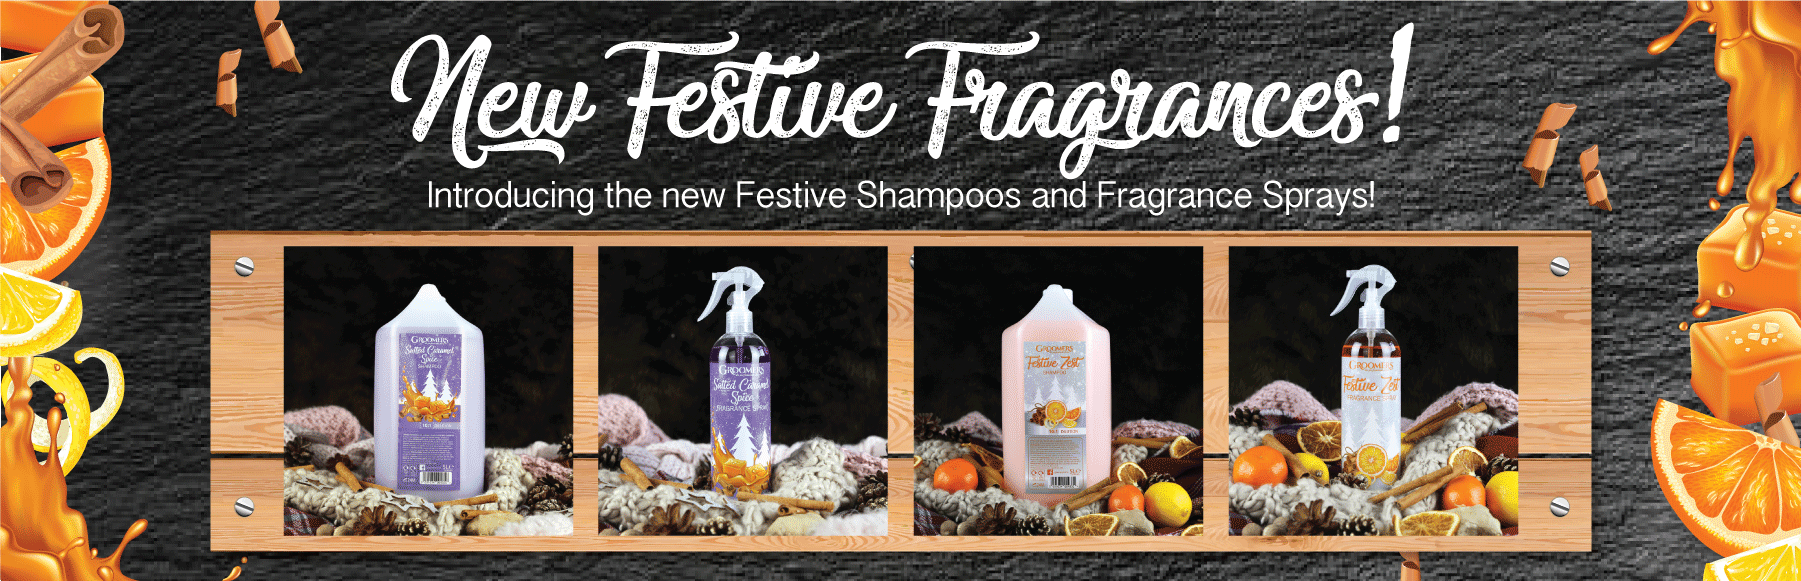 New Christmas Shampoos and Fragrance Sprays!